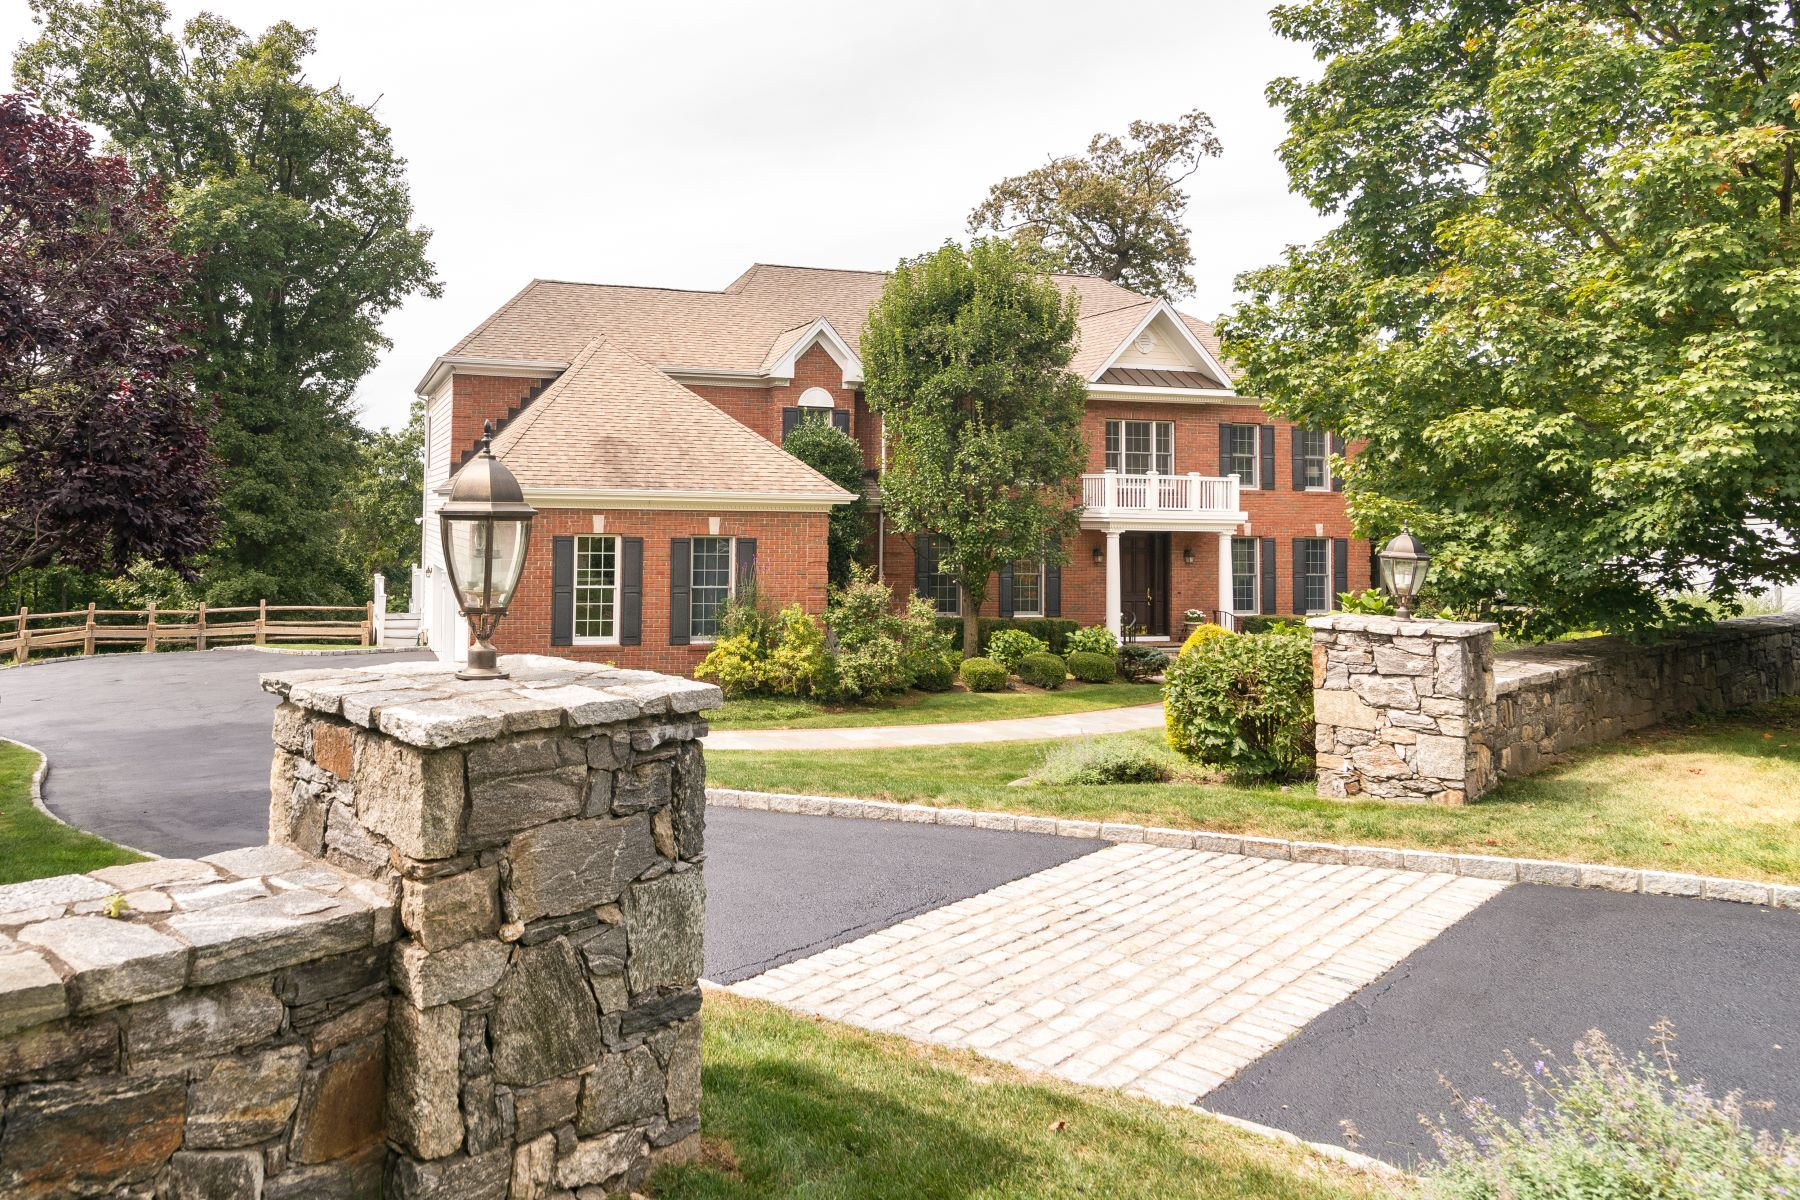 Single Family Homes for Sale at Spectacular Hudson Views 3 Westview Circle Sleepy Hollow, New York 10591 United States